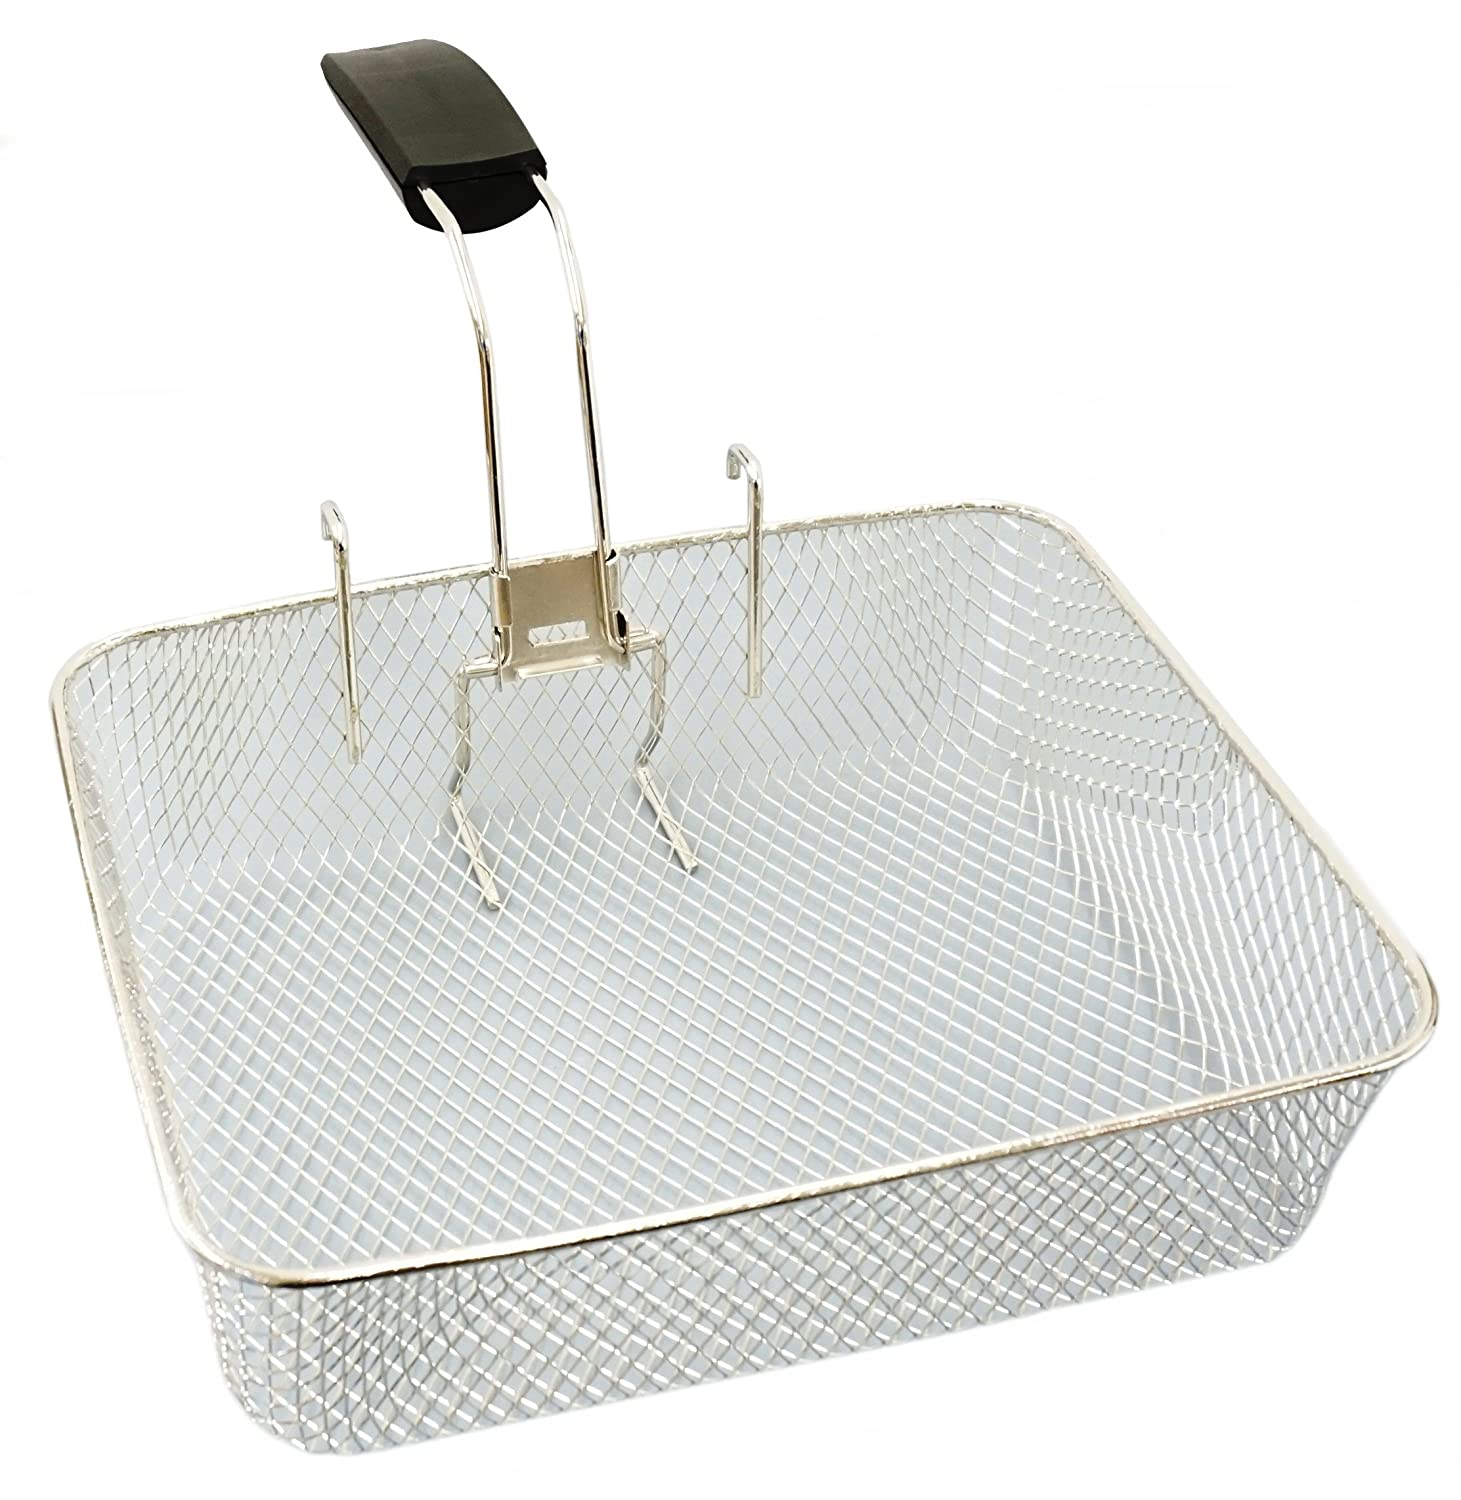 Presto Jumbo ProFry™ Basket for use with Dual Basket ProFry™ models, 09992